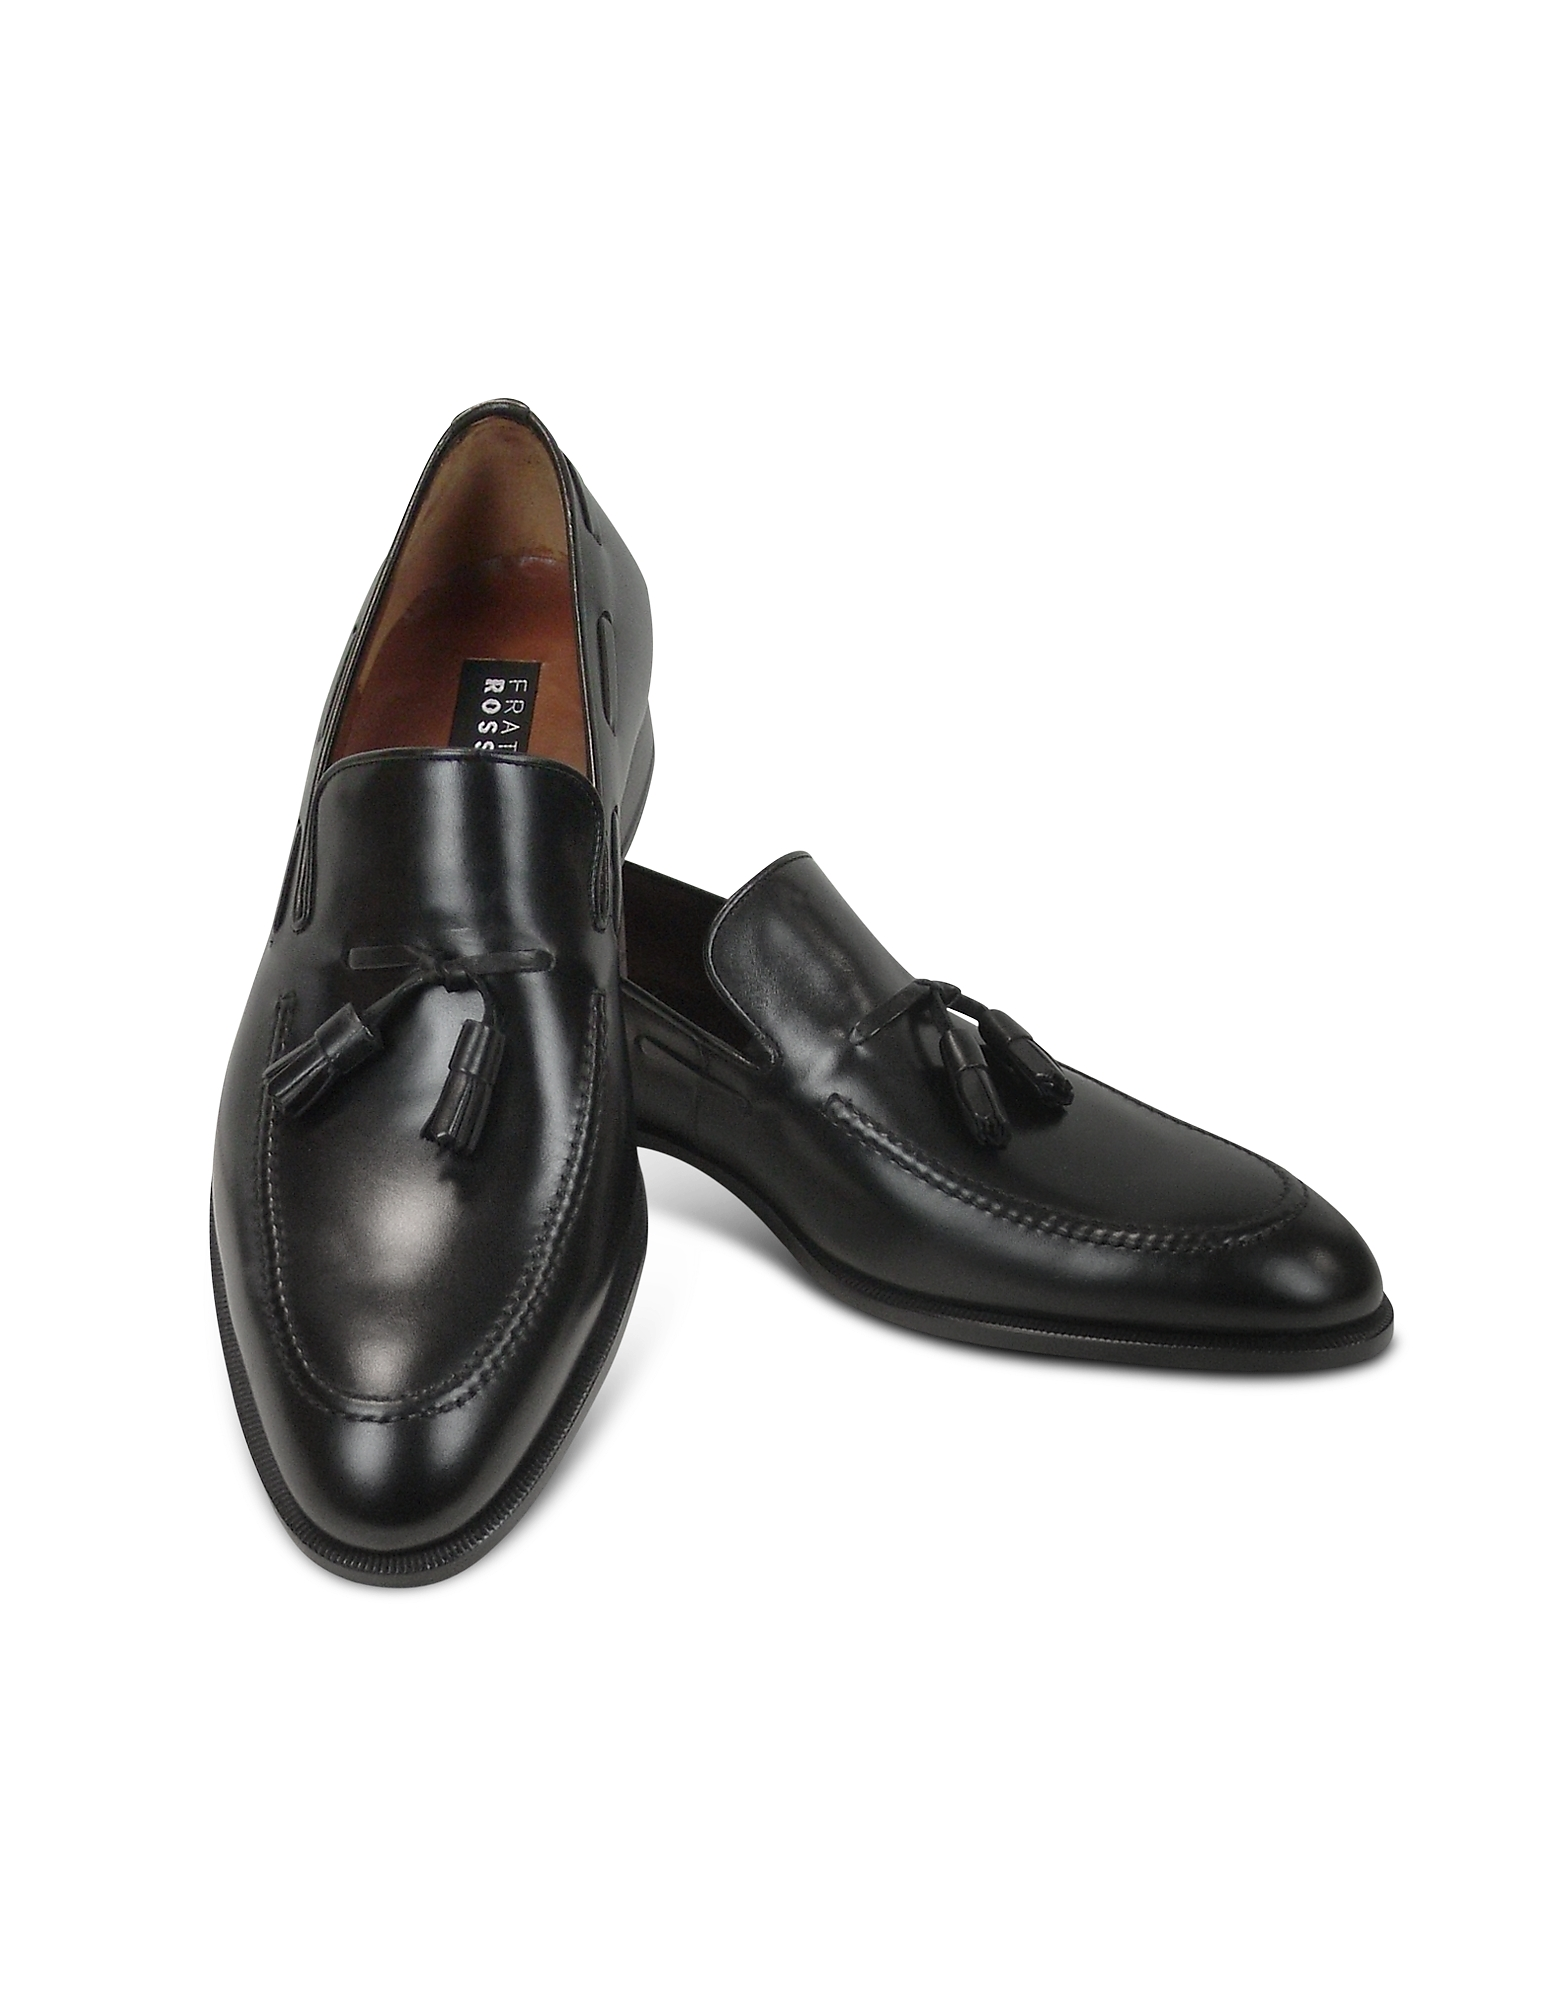 Fratelli Rossetti Designer Shoes, Black Calf Leather Tassel Loafer Shoes